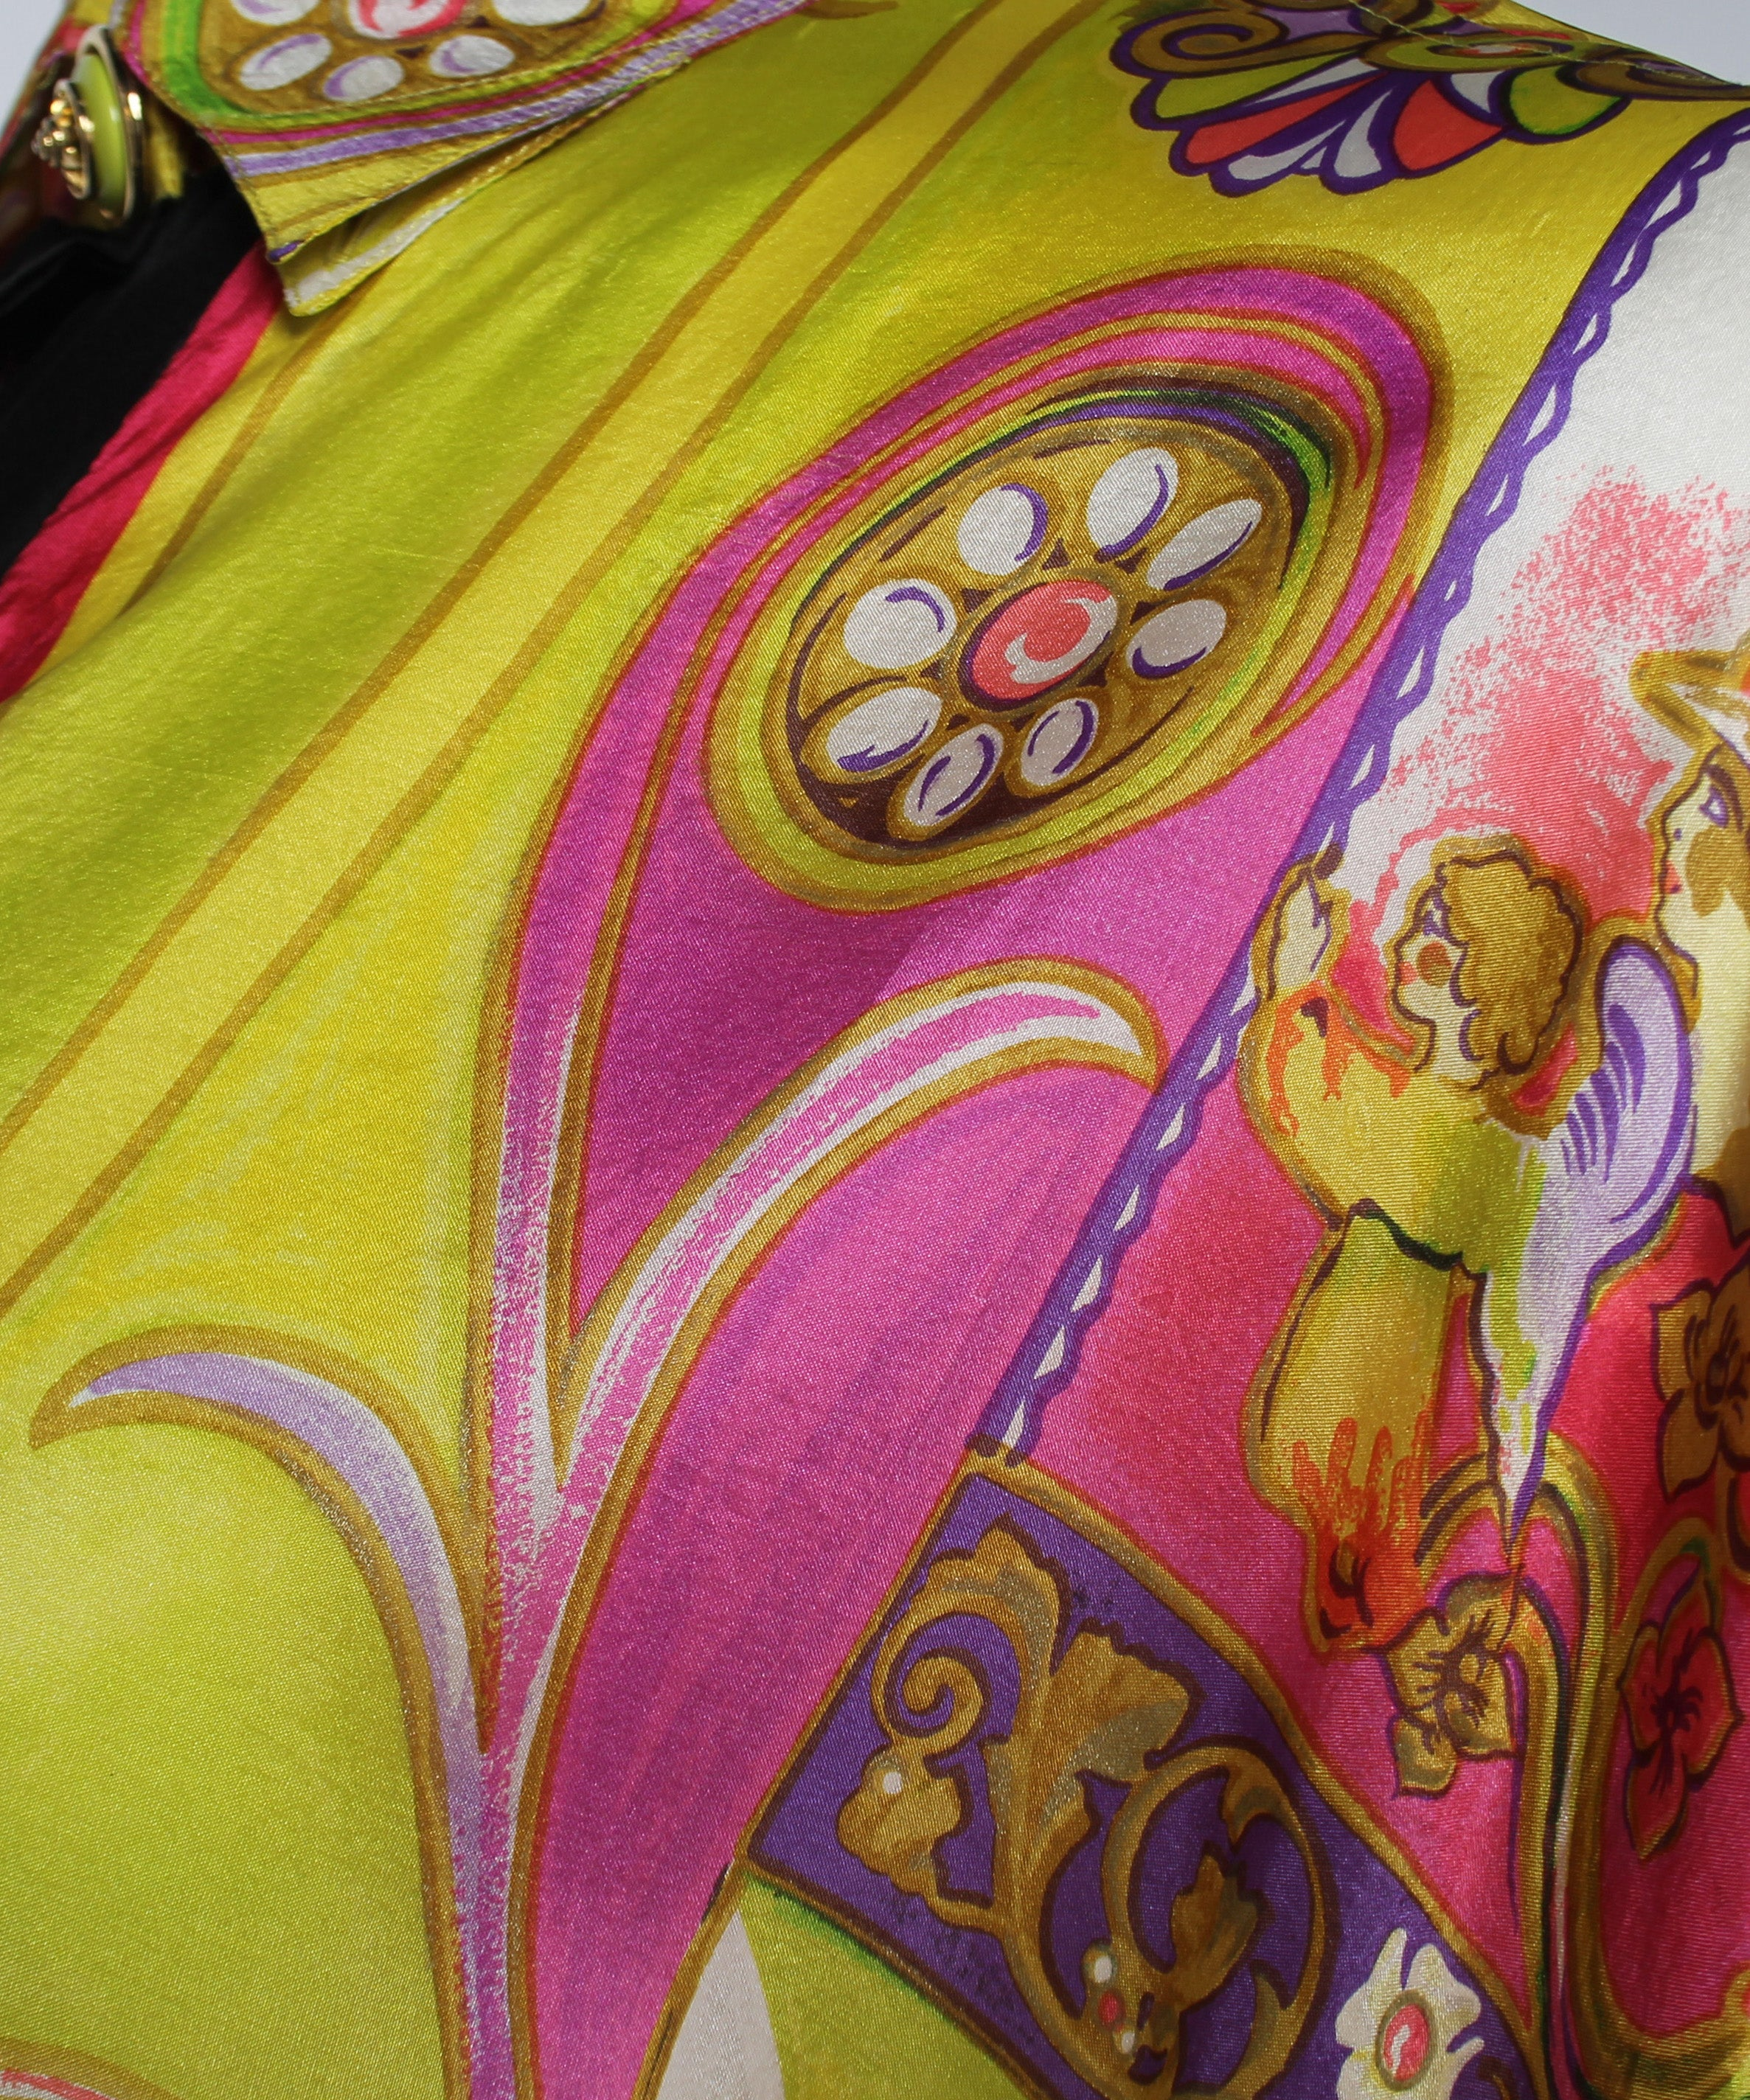 PRINT -Versace Couture Neon Berry Colors Whimsical Equestrian Print Silk Shirt - C.Madeleine's